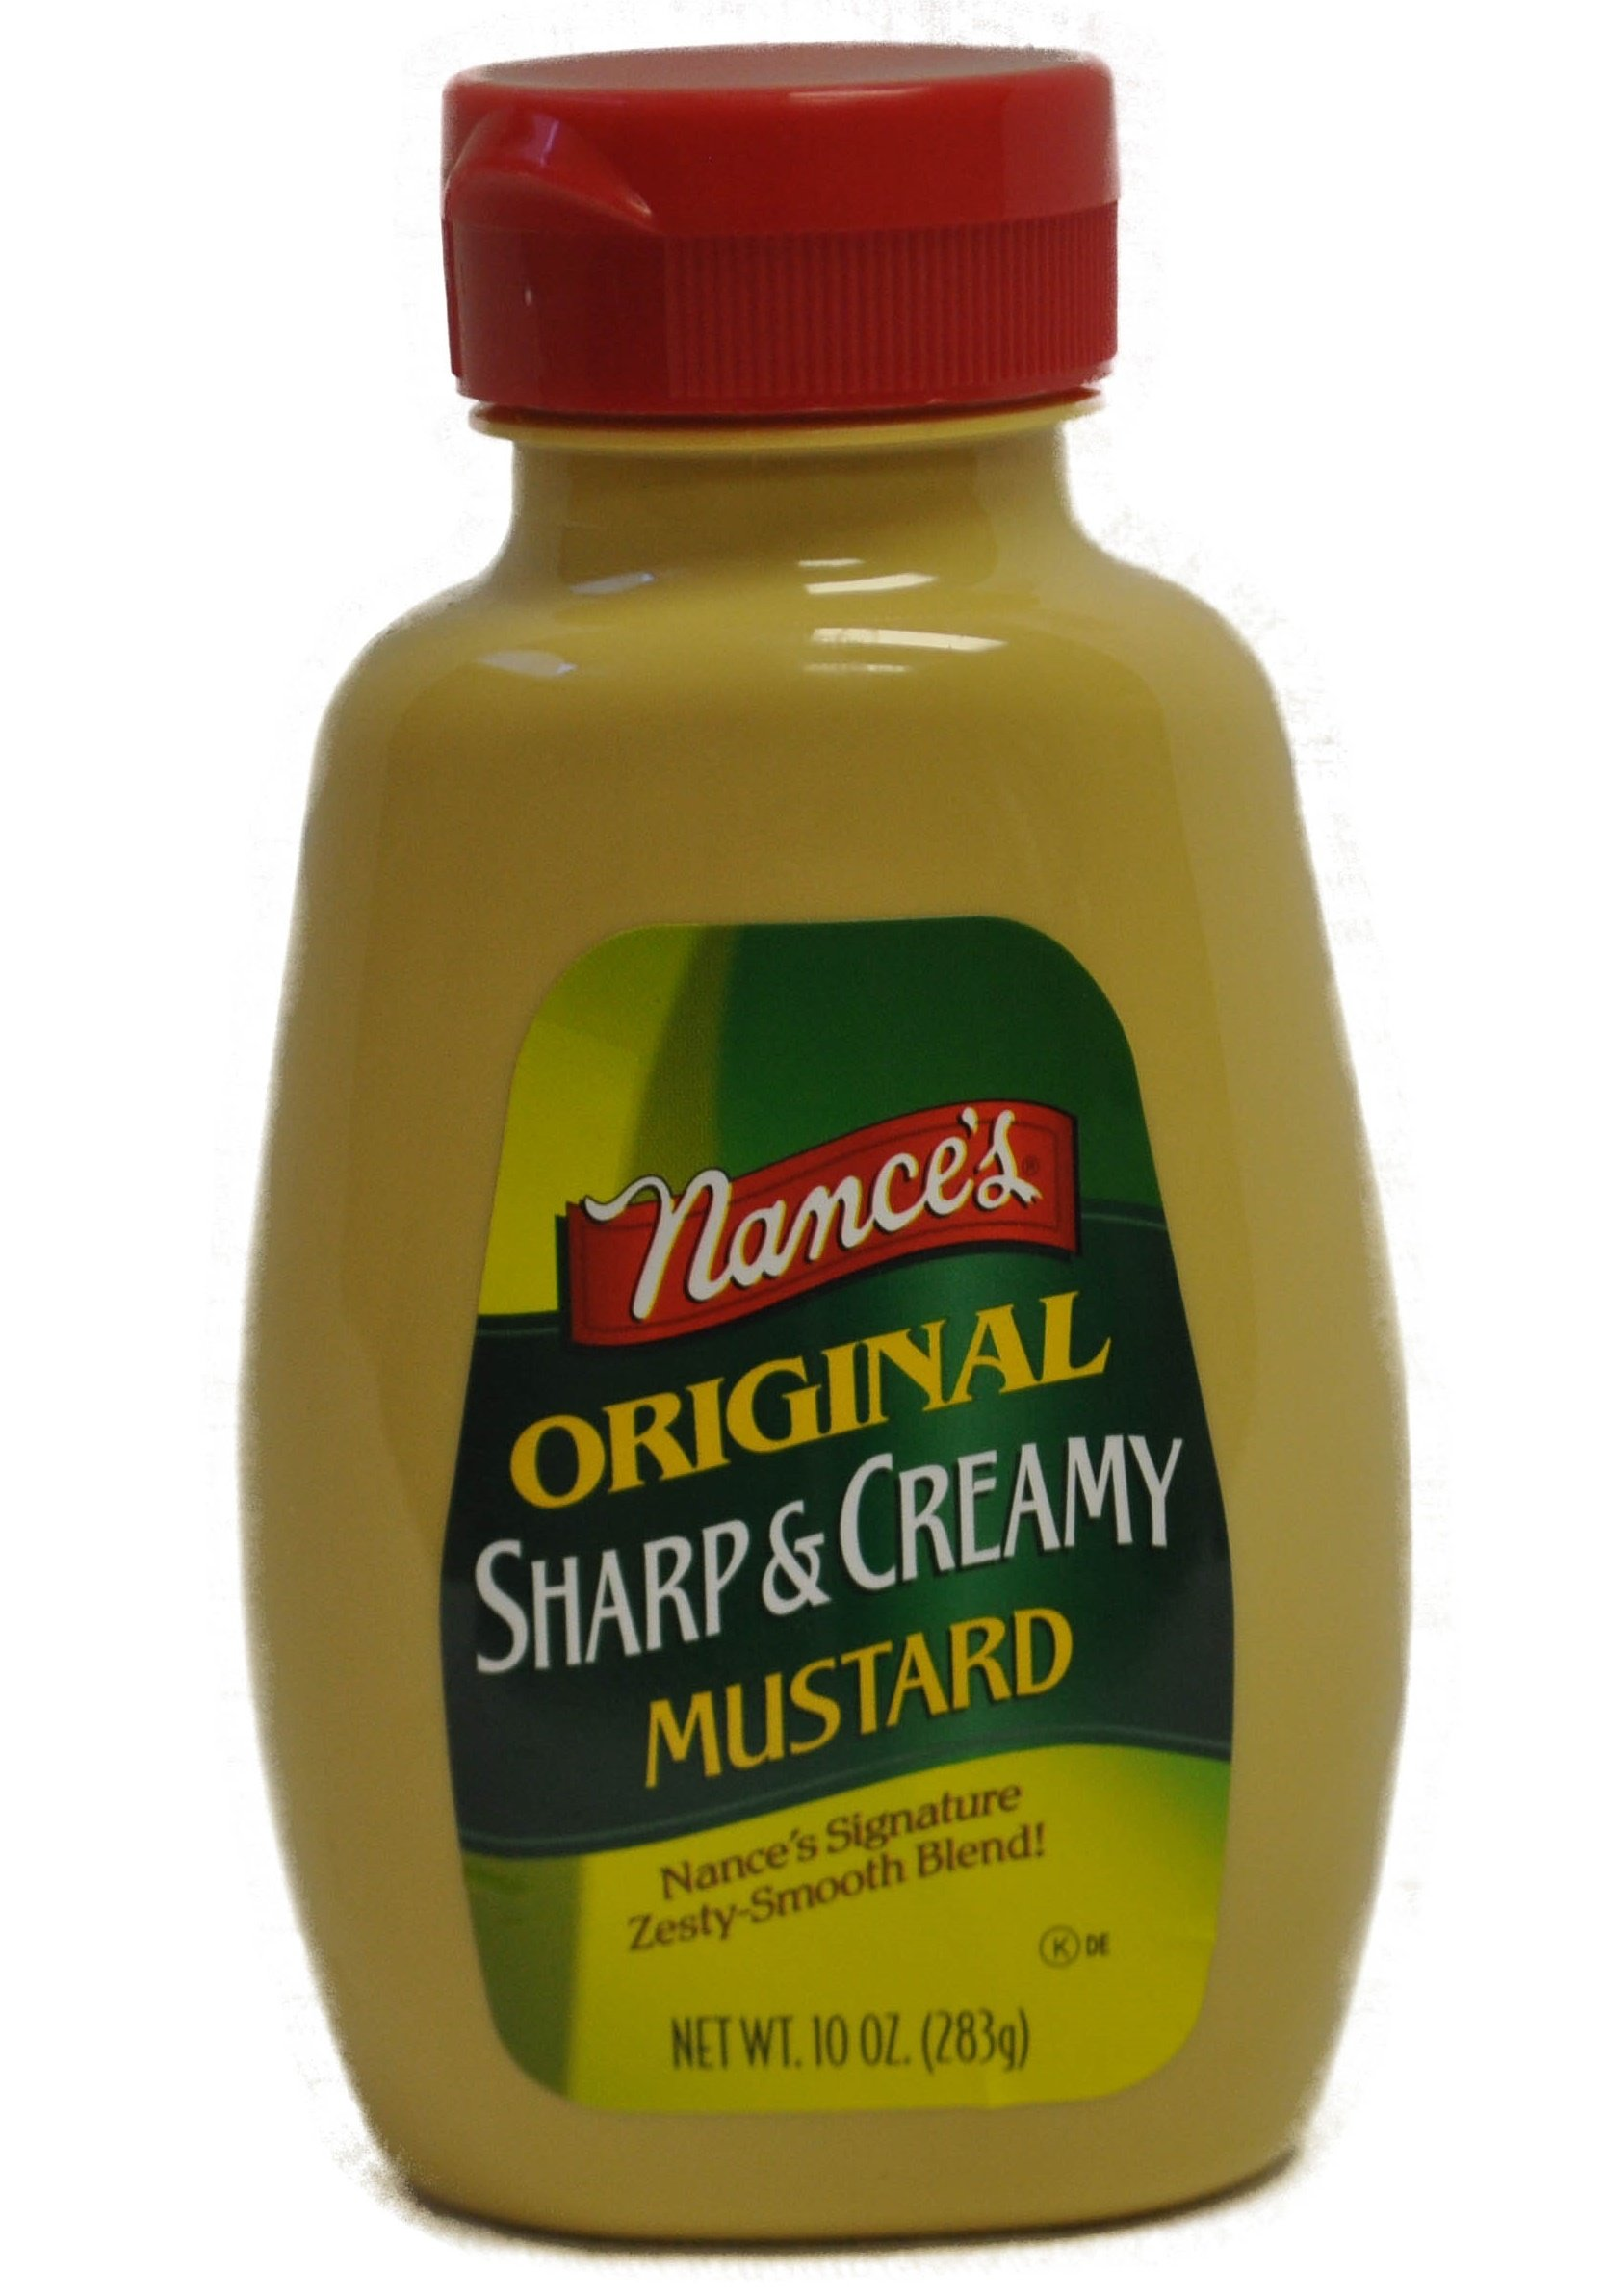 Nance's Mustard Sharp & Creamy 10.0 OZ(Pack of 12)